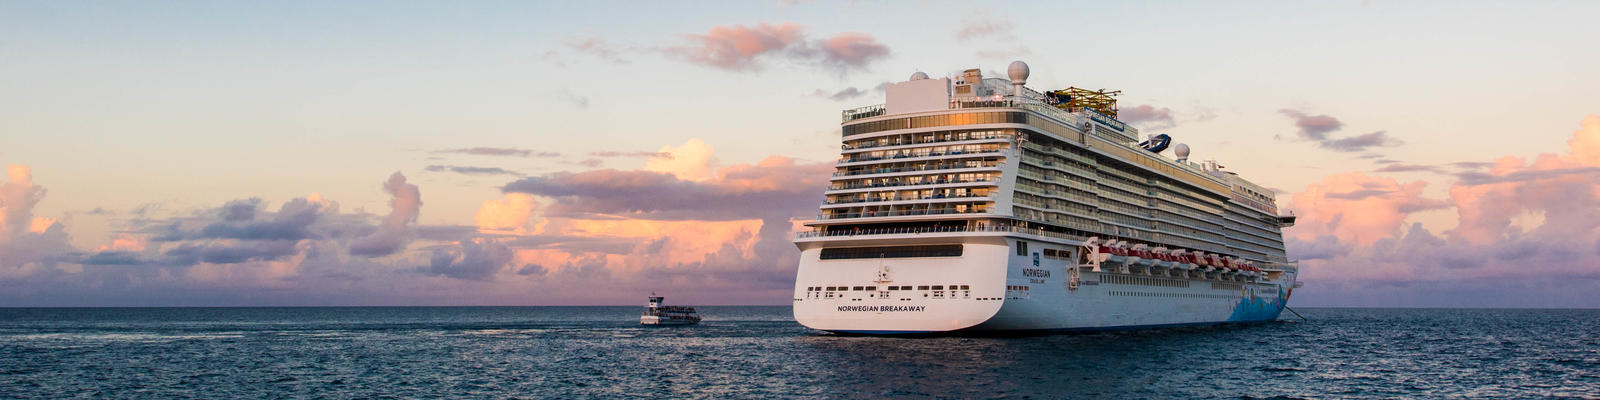 Cruise Line Cancellation Policies A Closer Look Cruise Critic